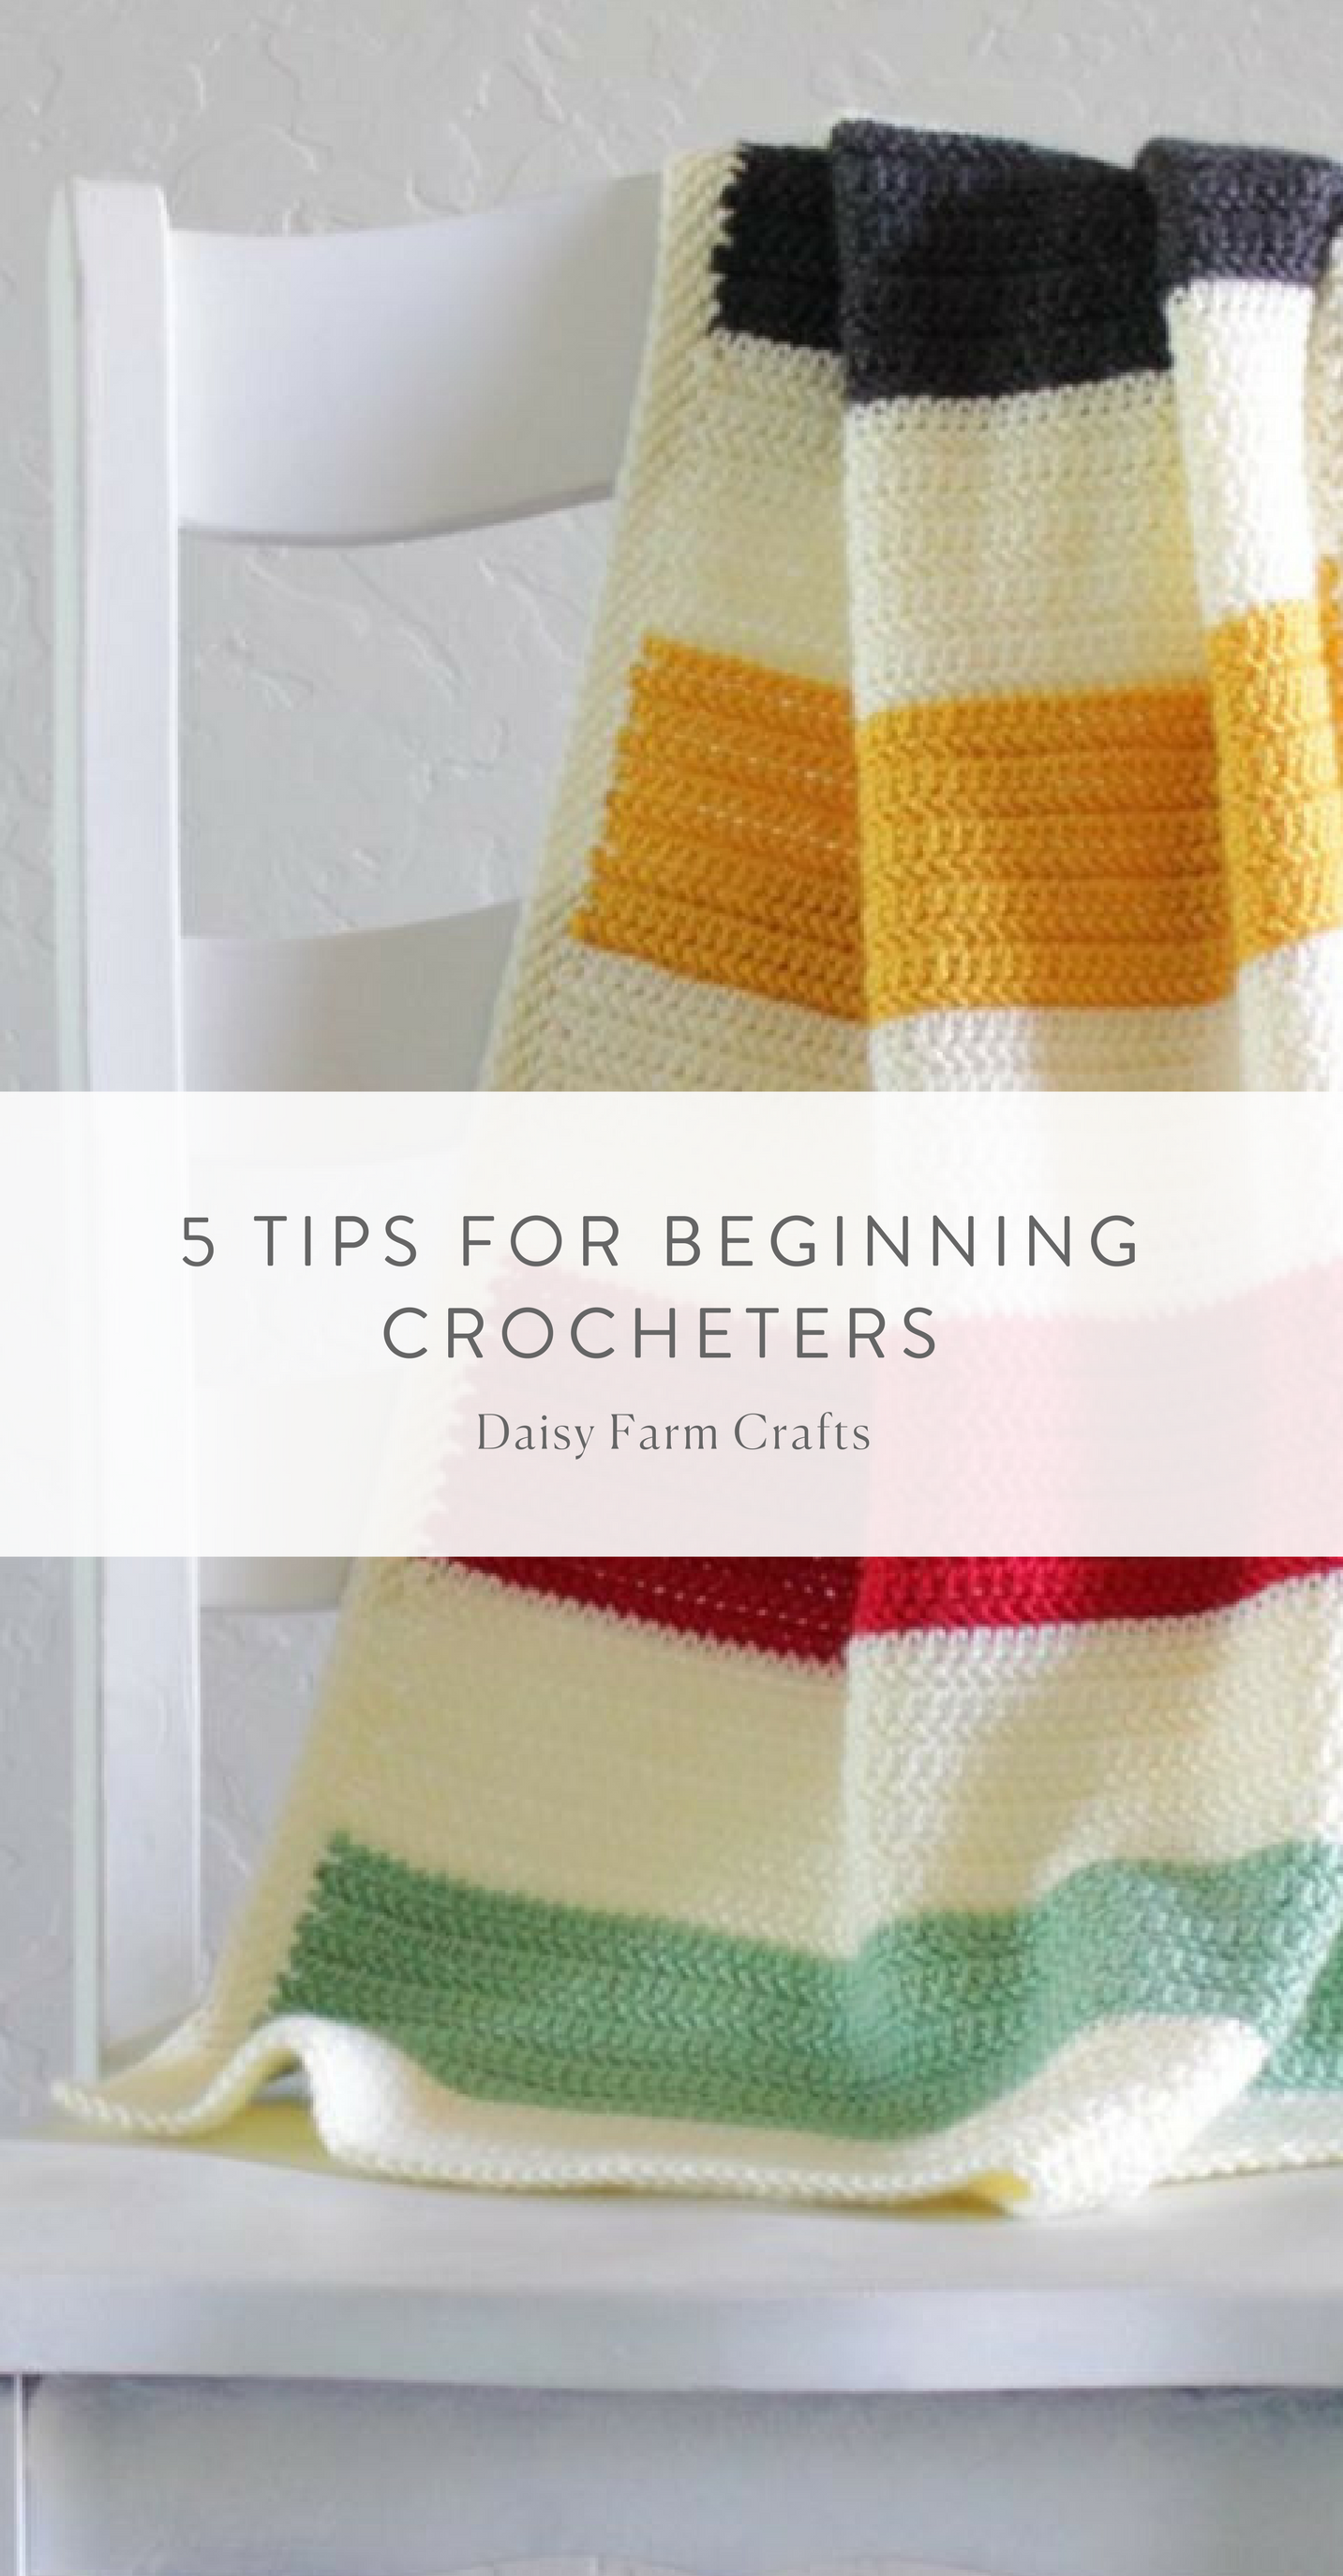 5 Tips for Beginning Crocheters | Crochet | Pinterest | Cobija ...